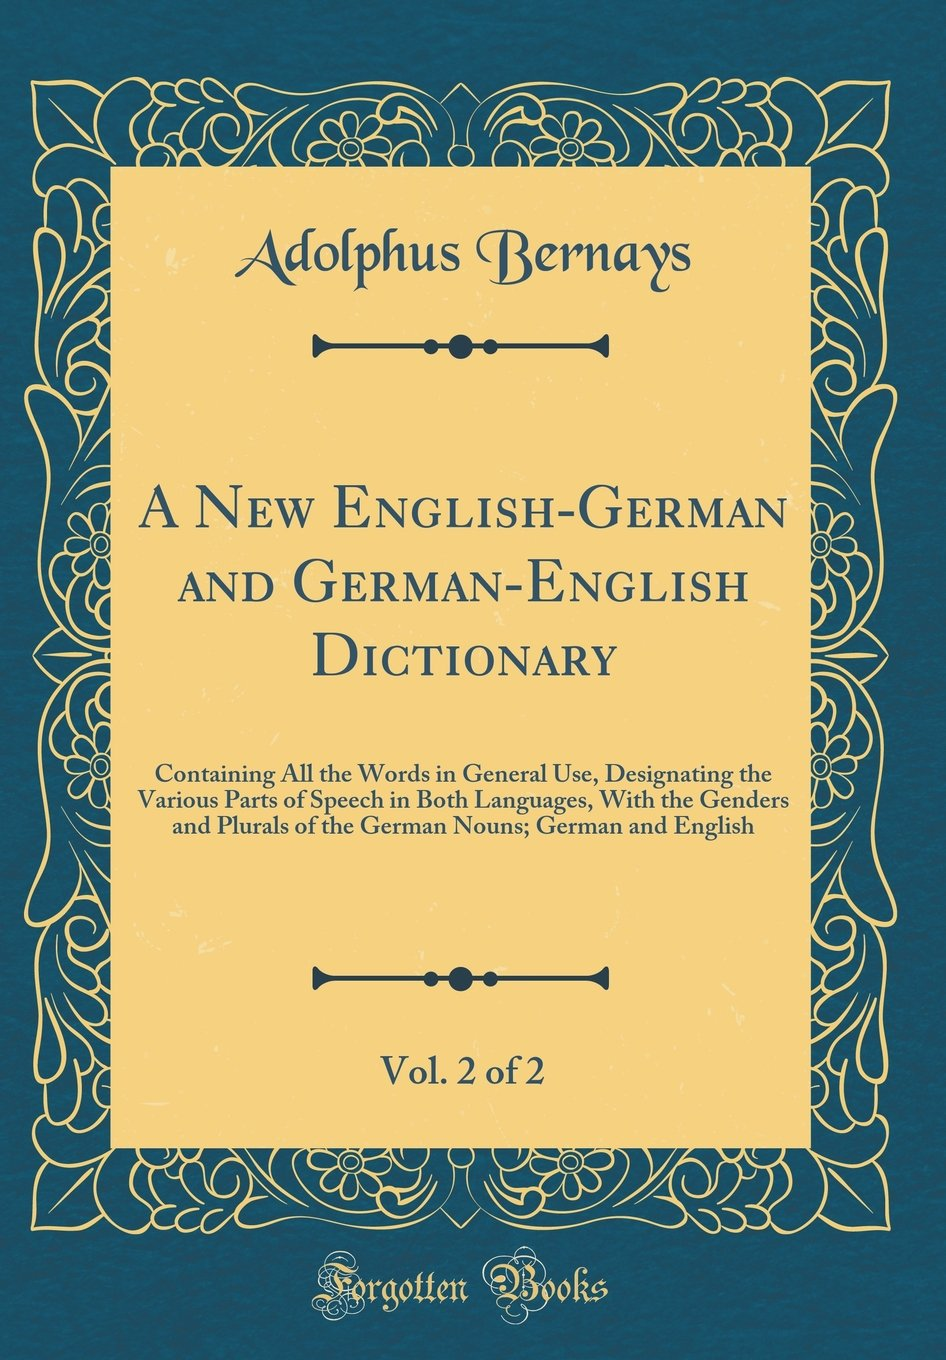 Download A New English-German and German-English Dictionary, Vol. 2 of 2: Containing All the Words in General Use, Designating the Various Parts of Speech in ... Nouns; German and English (Classic Reprint) ebook